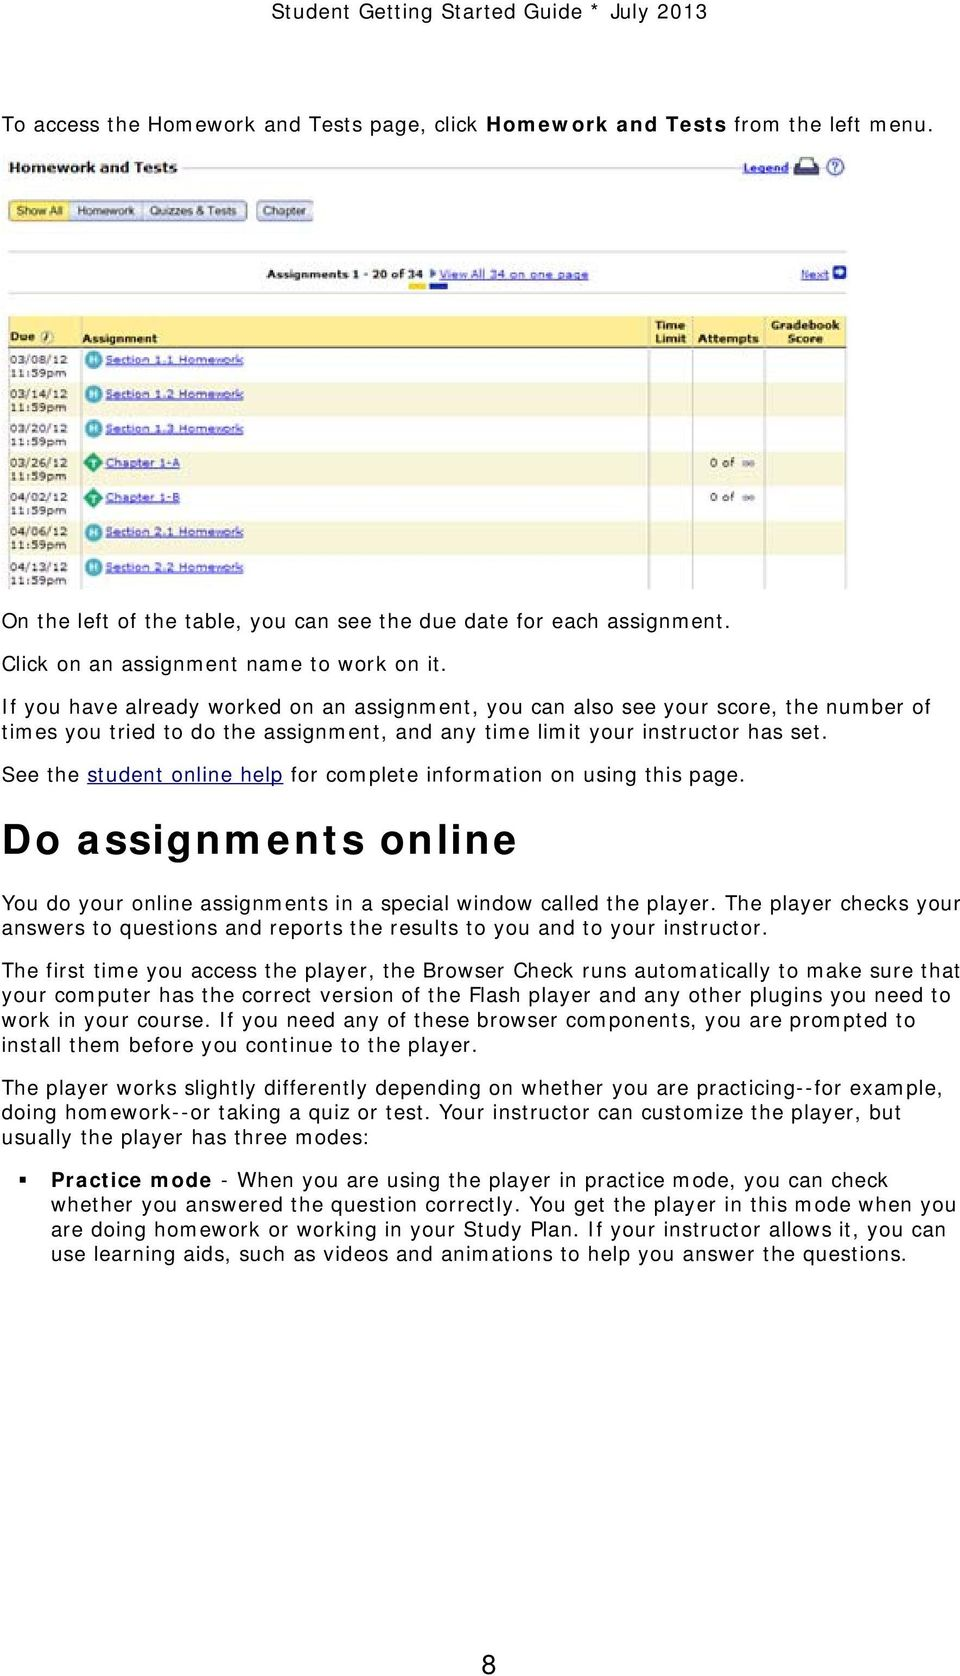 See the student online help for complete information on using this page. Do assignments online You do your online assignments in a special window called the player.